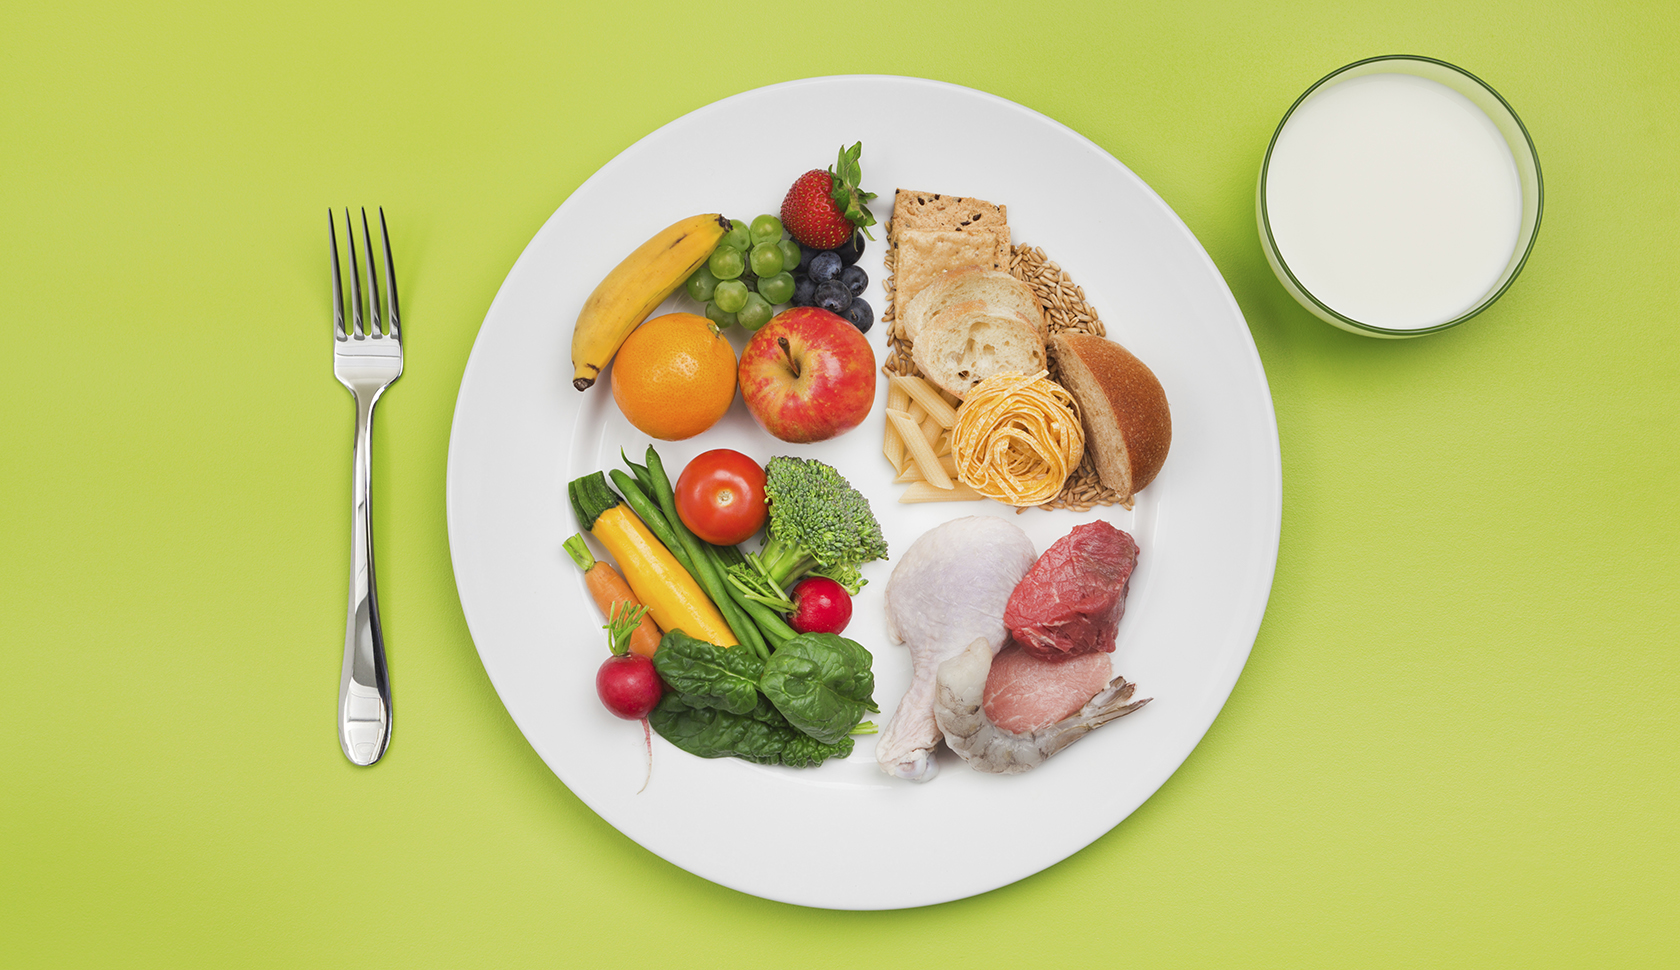 New USDA ChooseMyPlate Basic Food Group, Healthy Eating Diet Recommendation